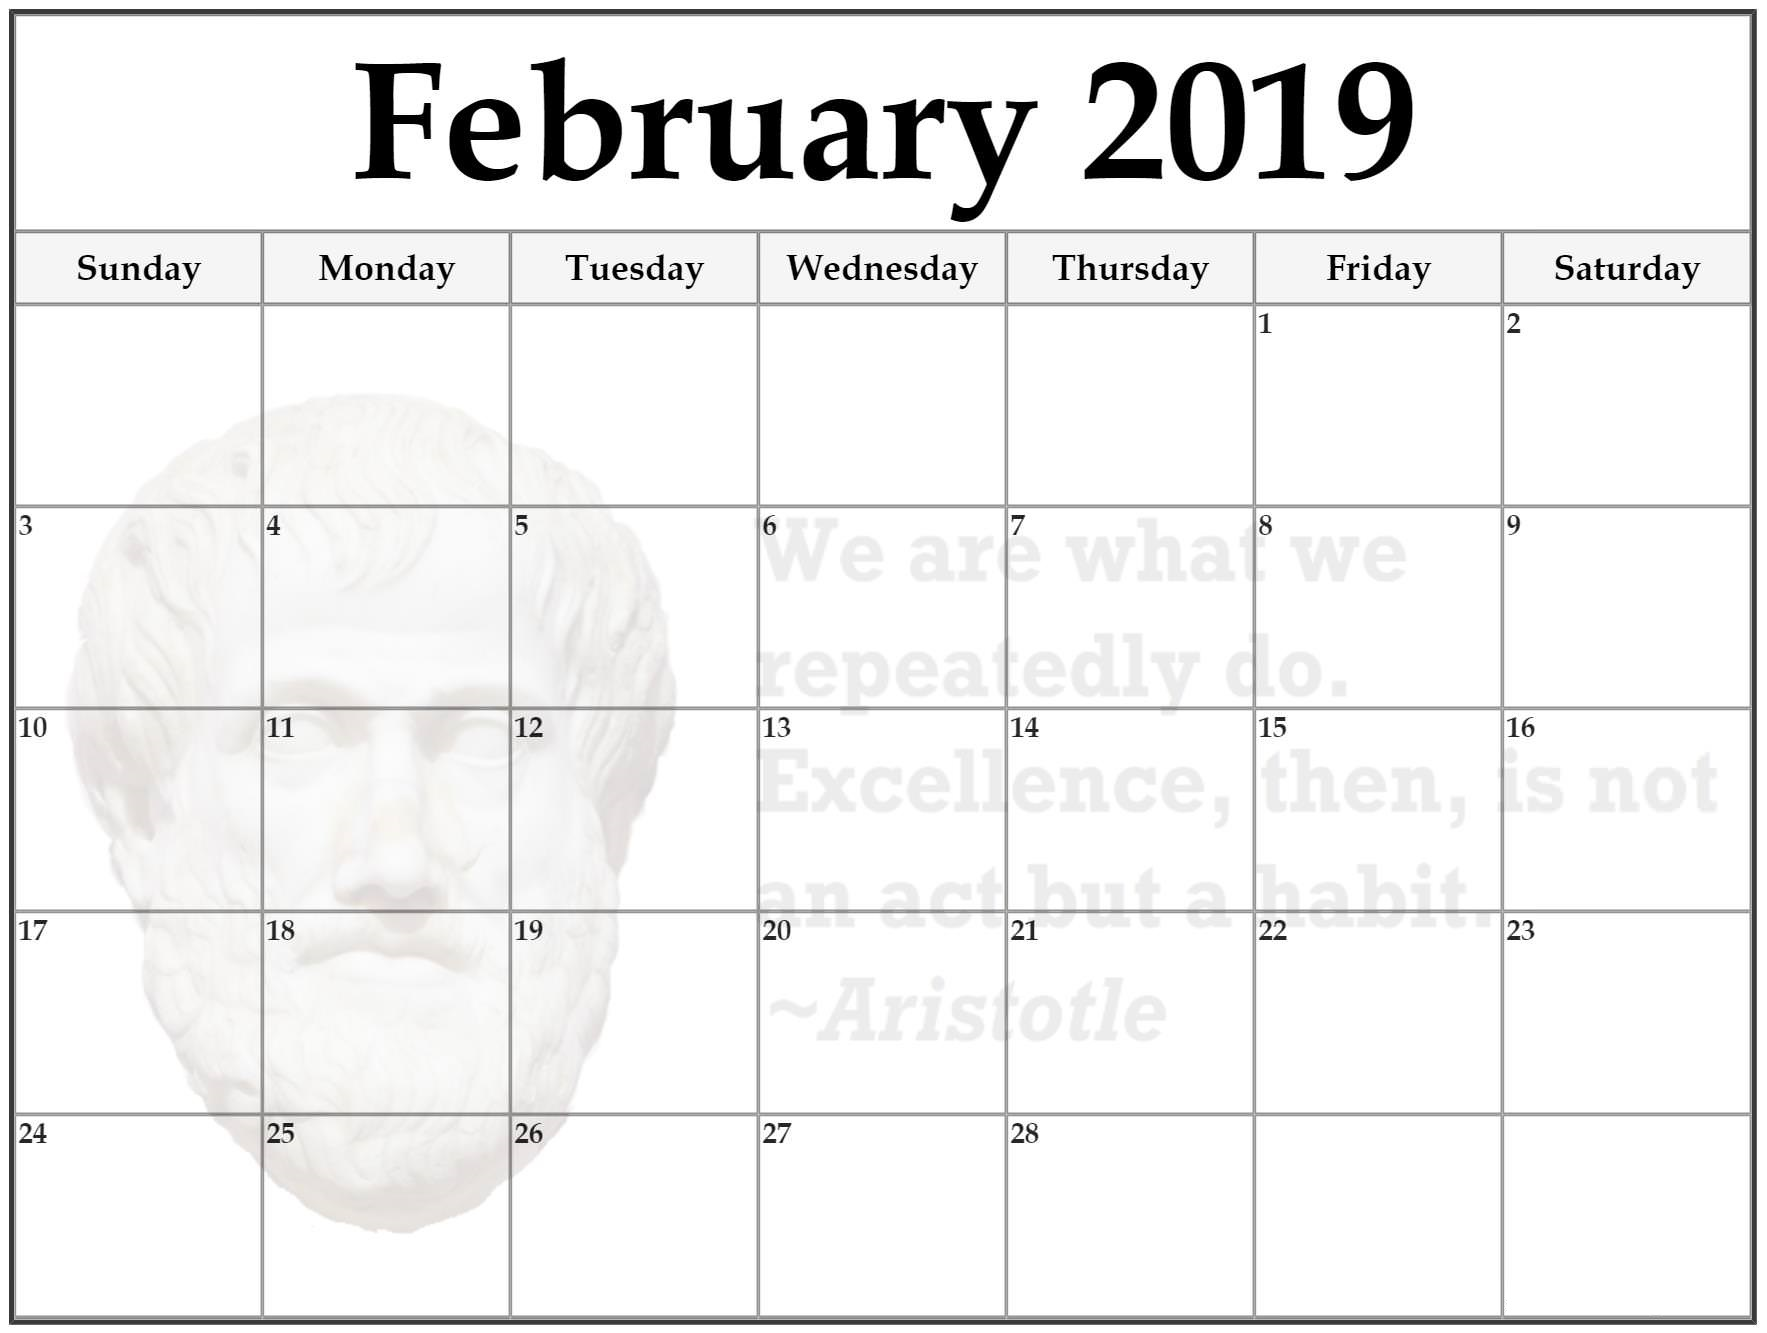 February 2019 Calendar Singapore With Holidays